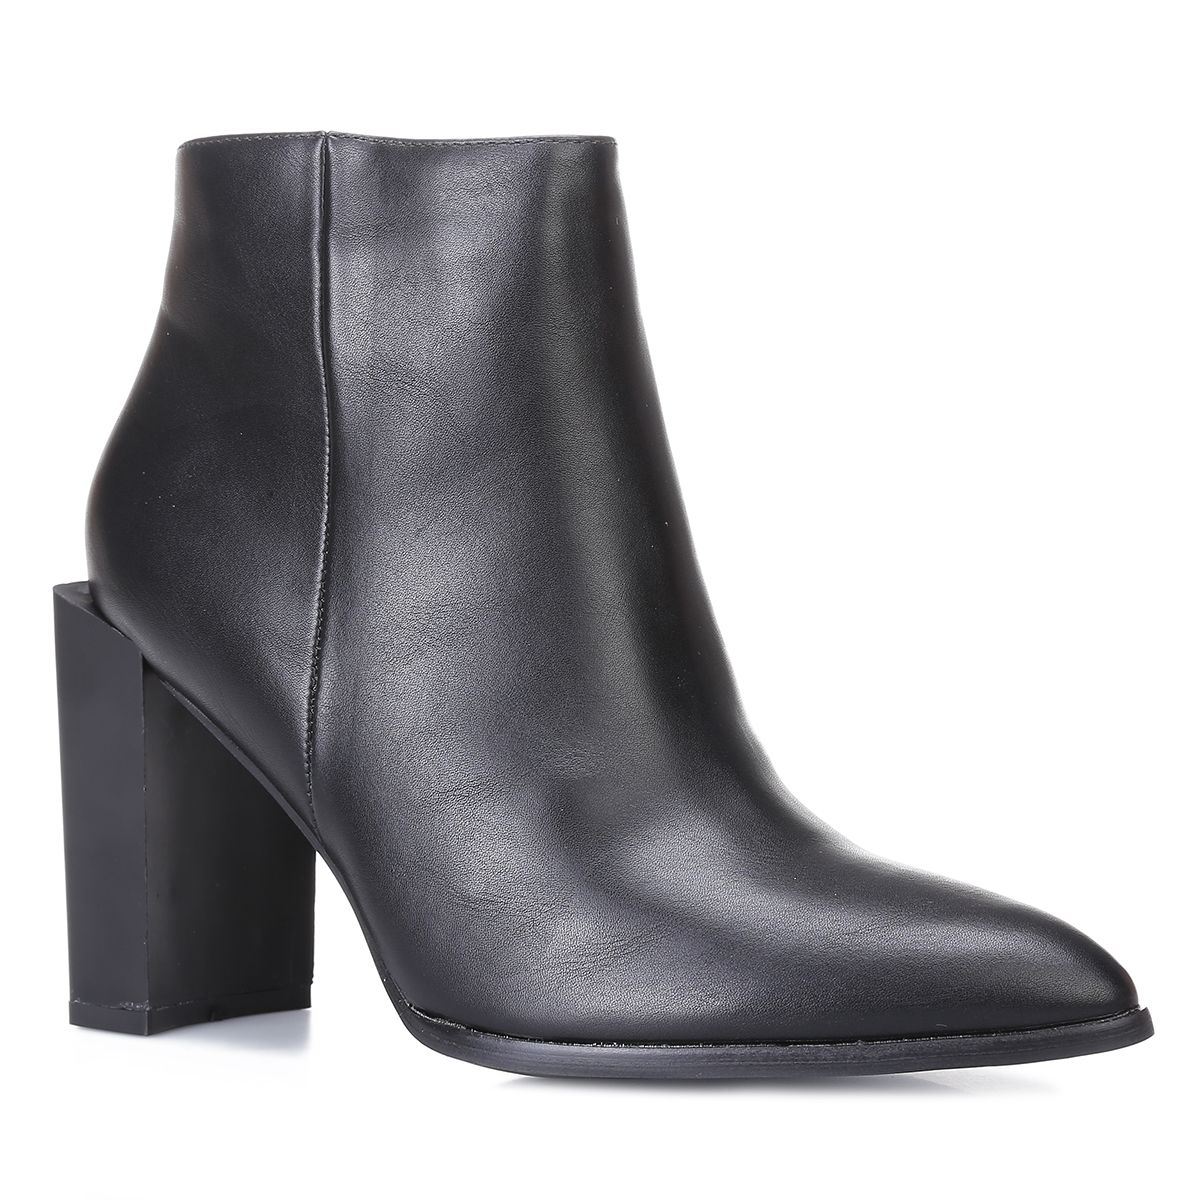 Bottines noires bout pointu et talon carré